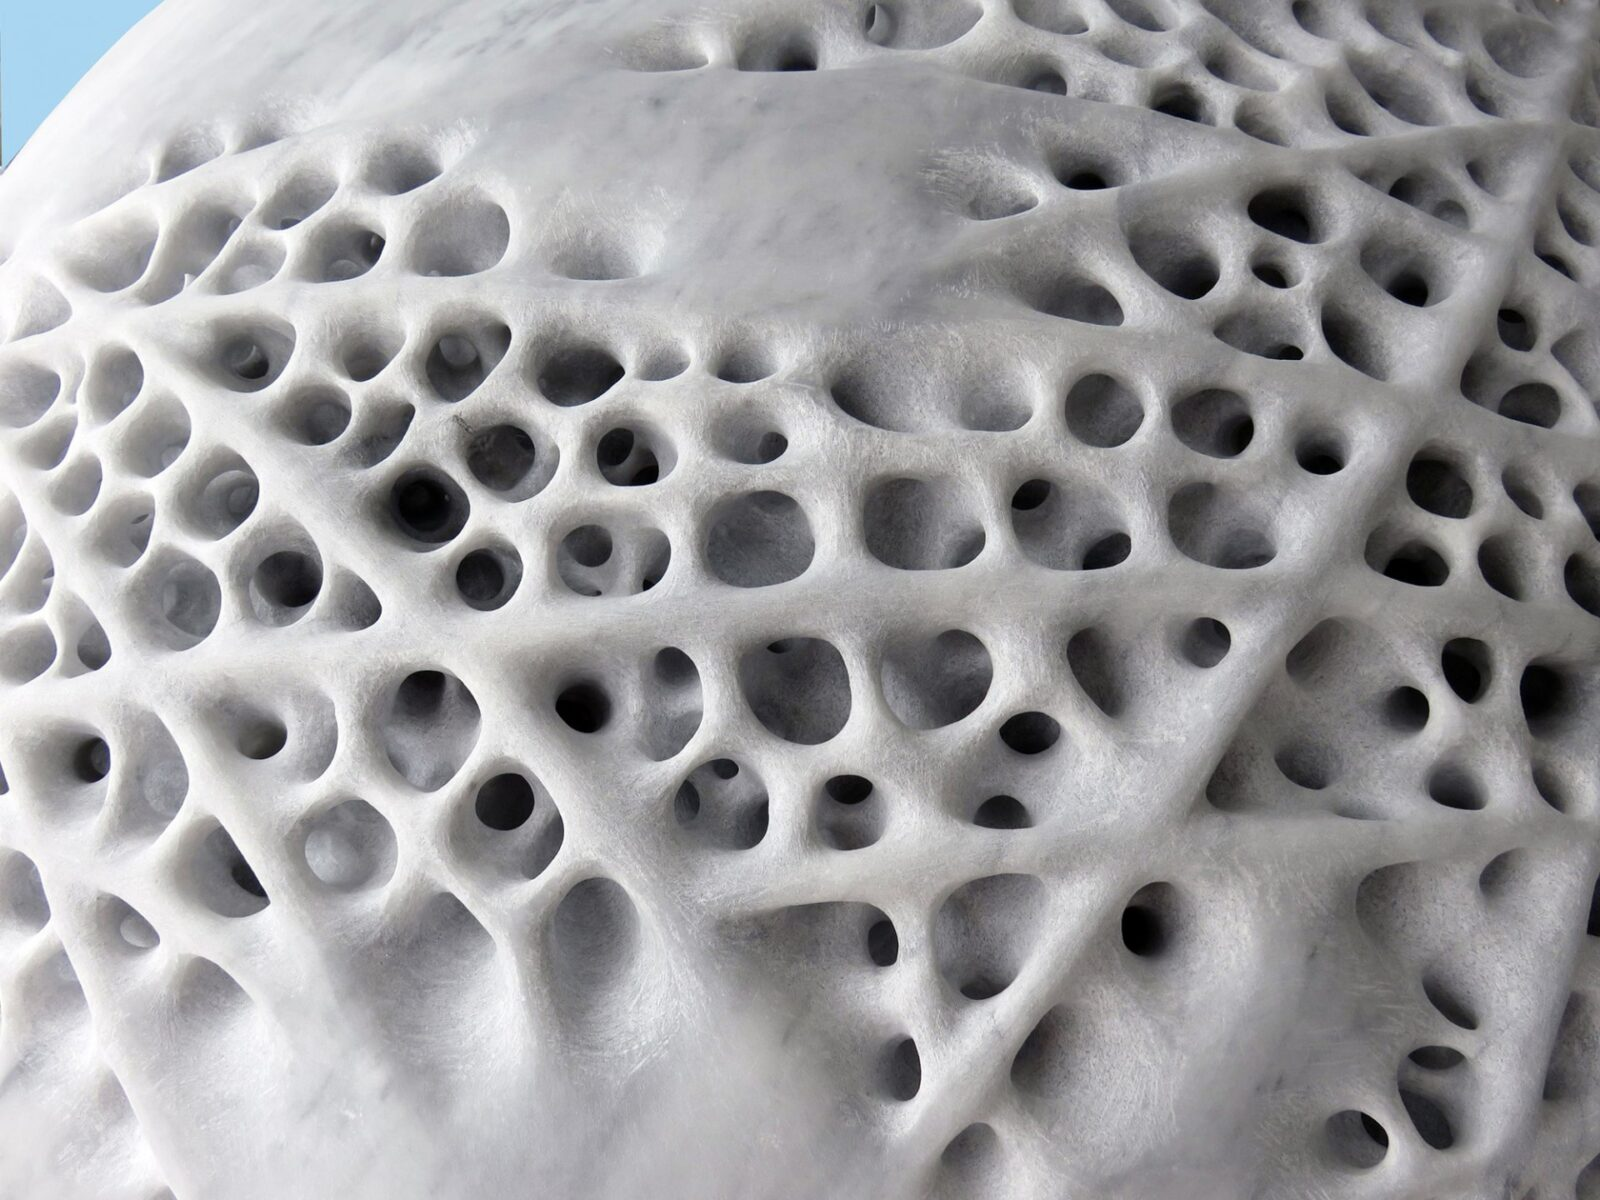 Porous Boulder-Like Sculptures Chiseled from Italian Marble by Sibylle Pasche